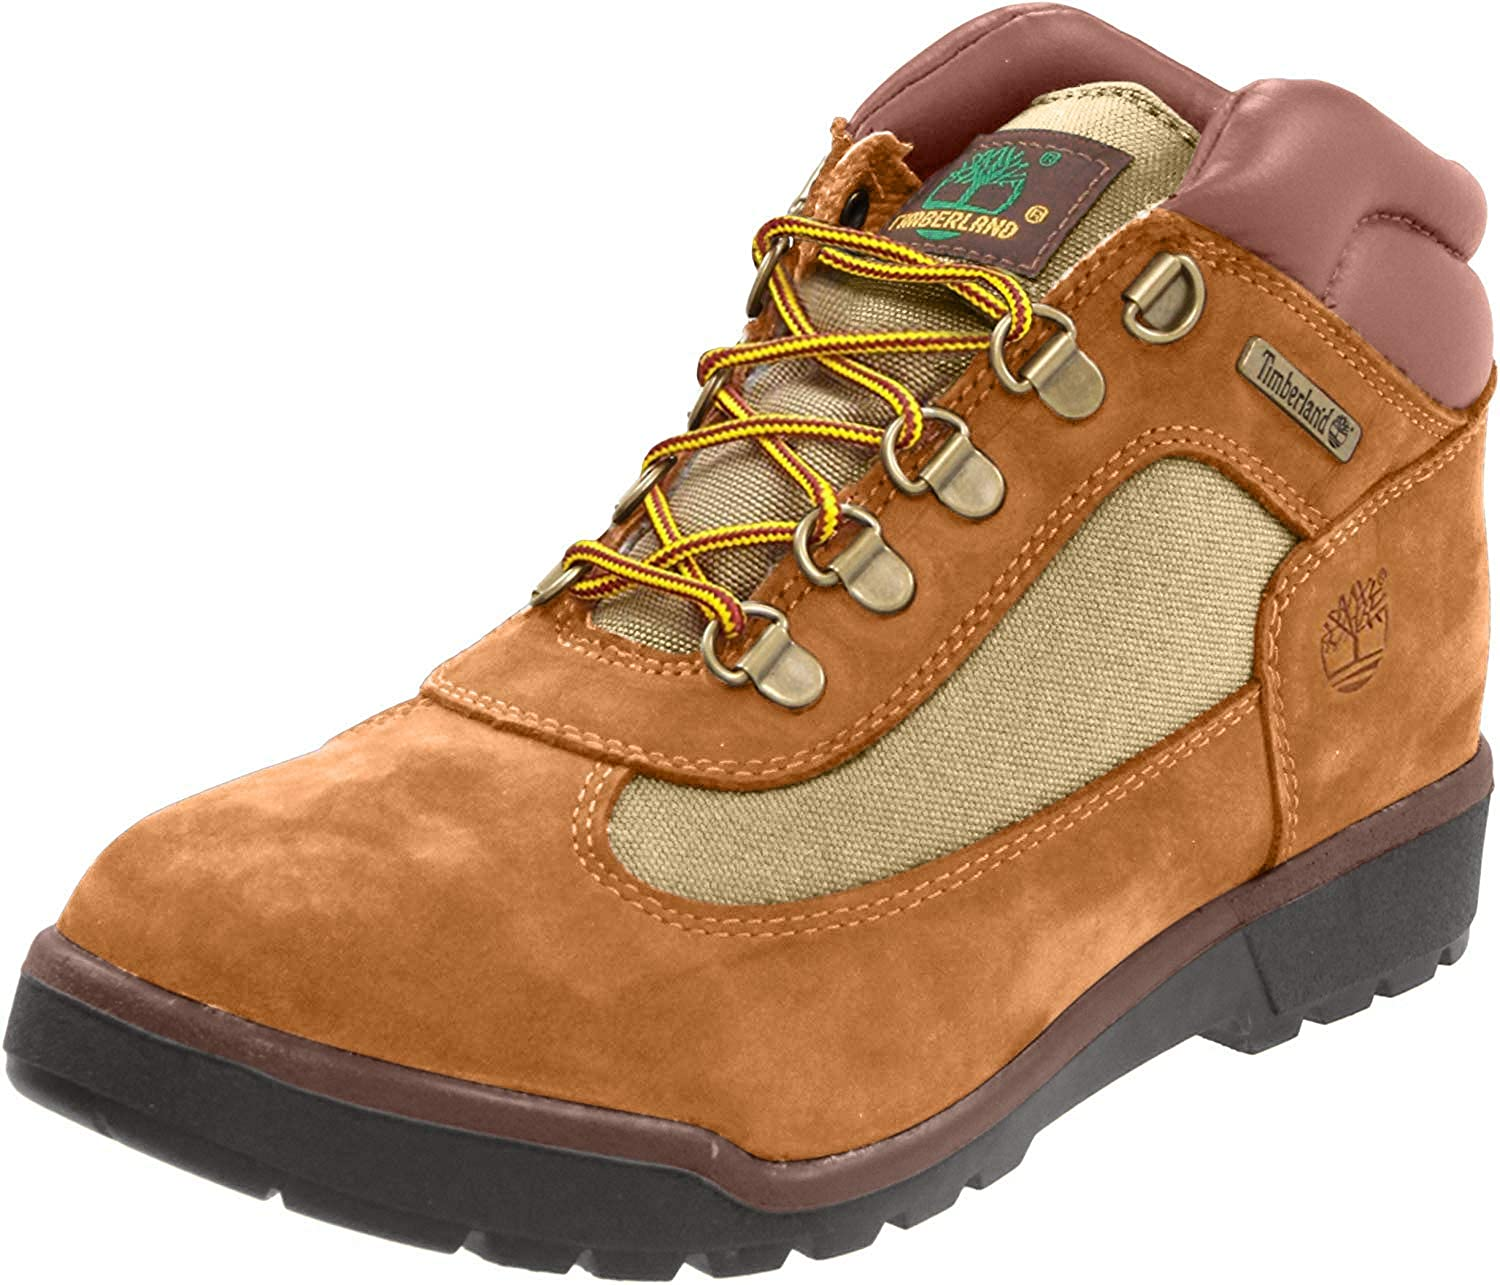 TIMBERLAND EURO HIKER TODDLERS BOOTS TD Wheat 96875